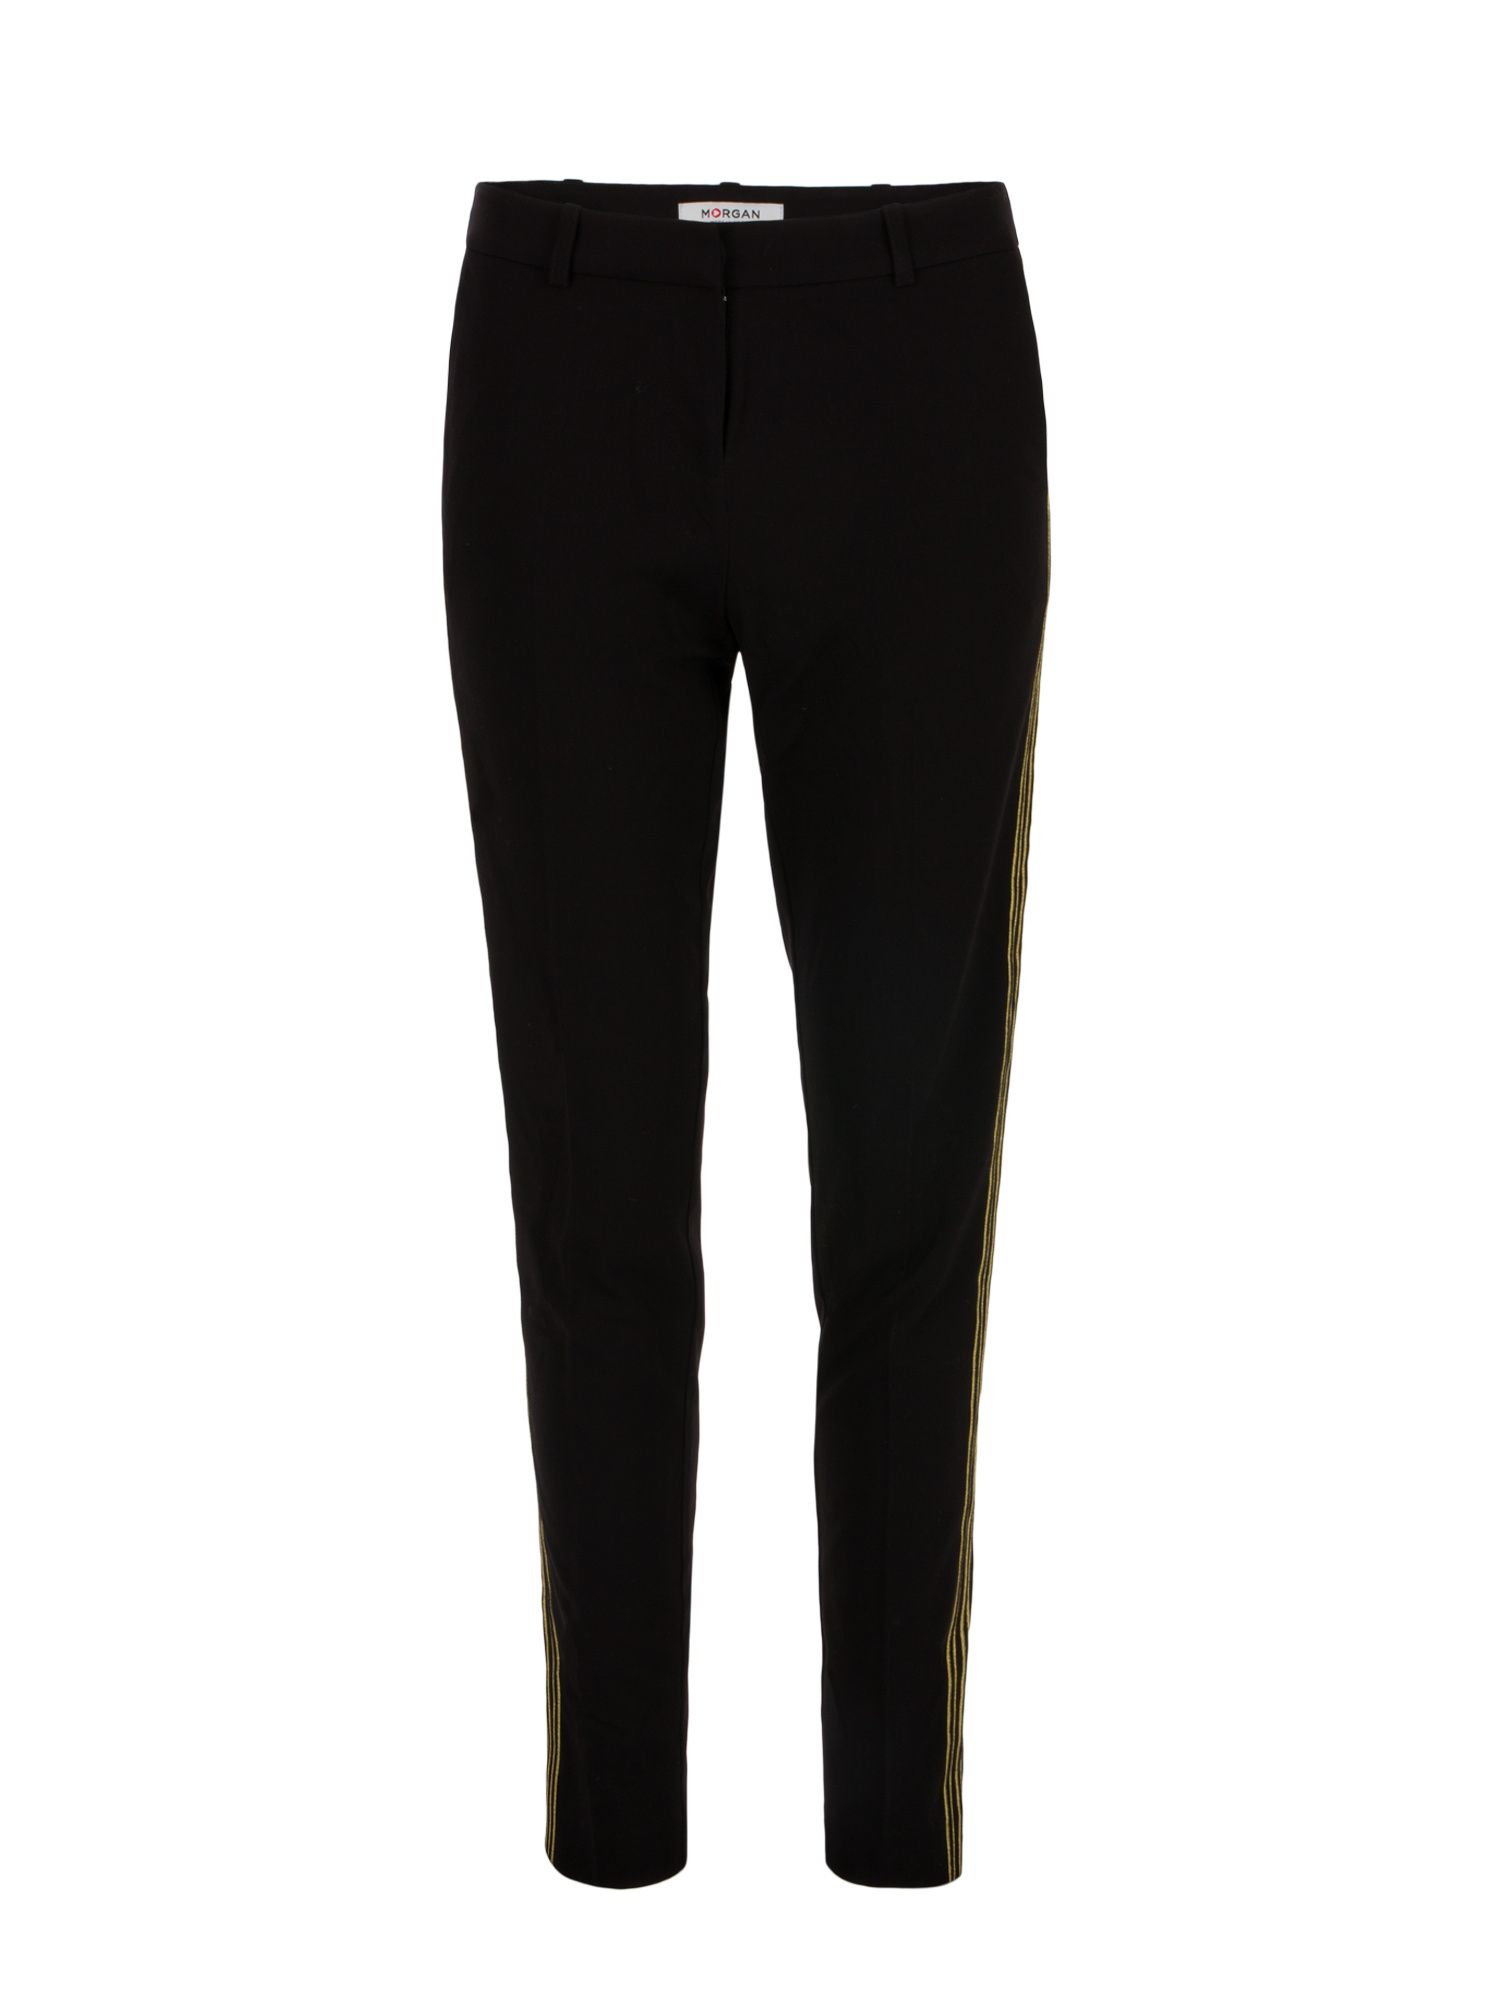 Morgan Gold Trimmed Slim Pants, Black